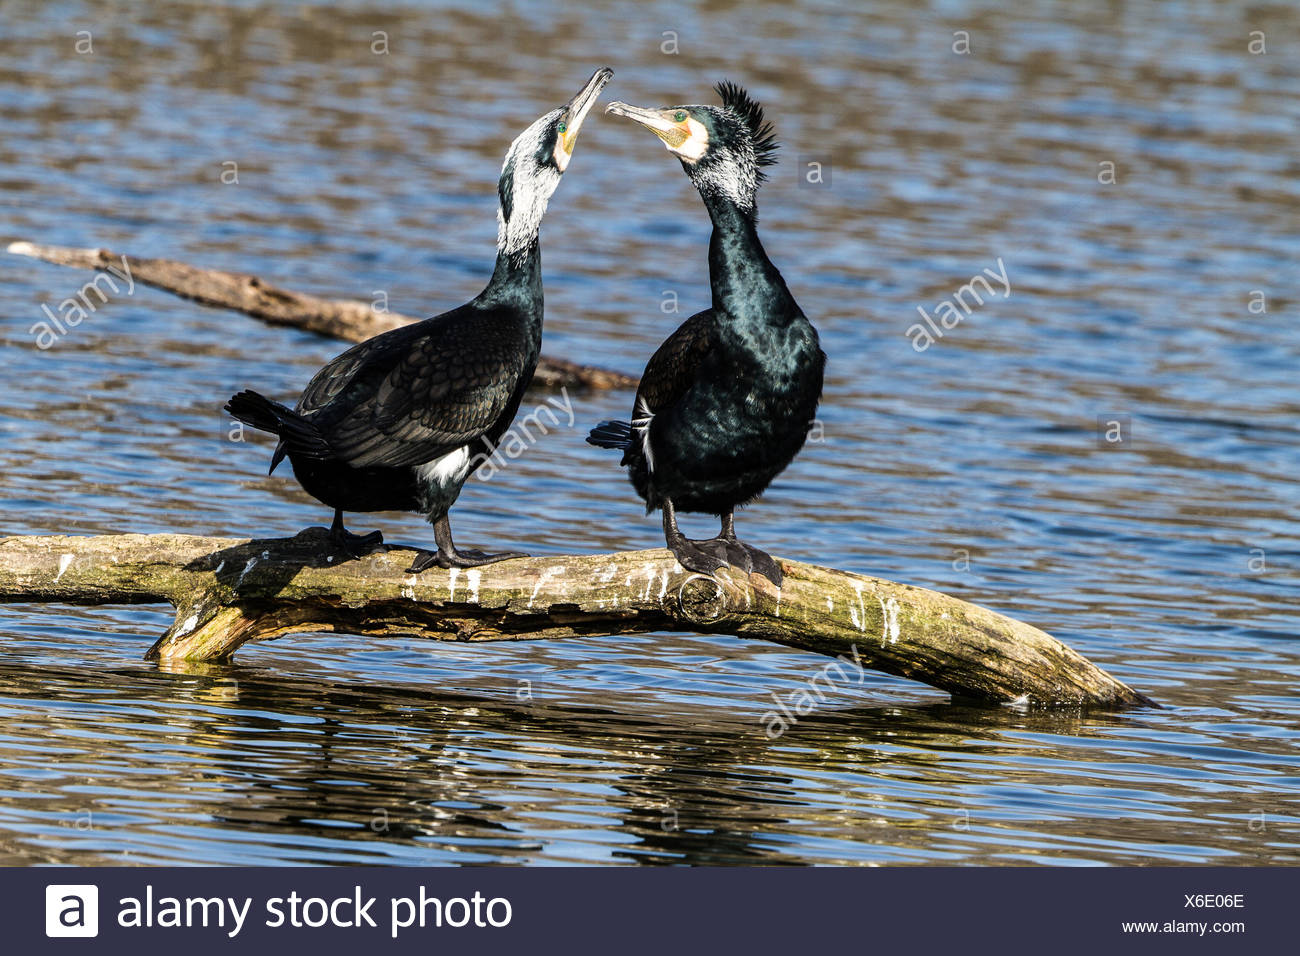 Mating Cormorants - Stock Image